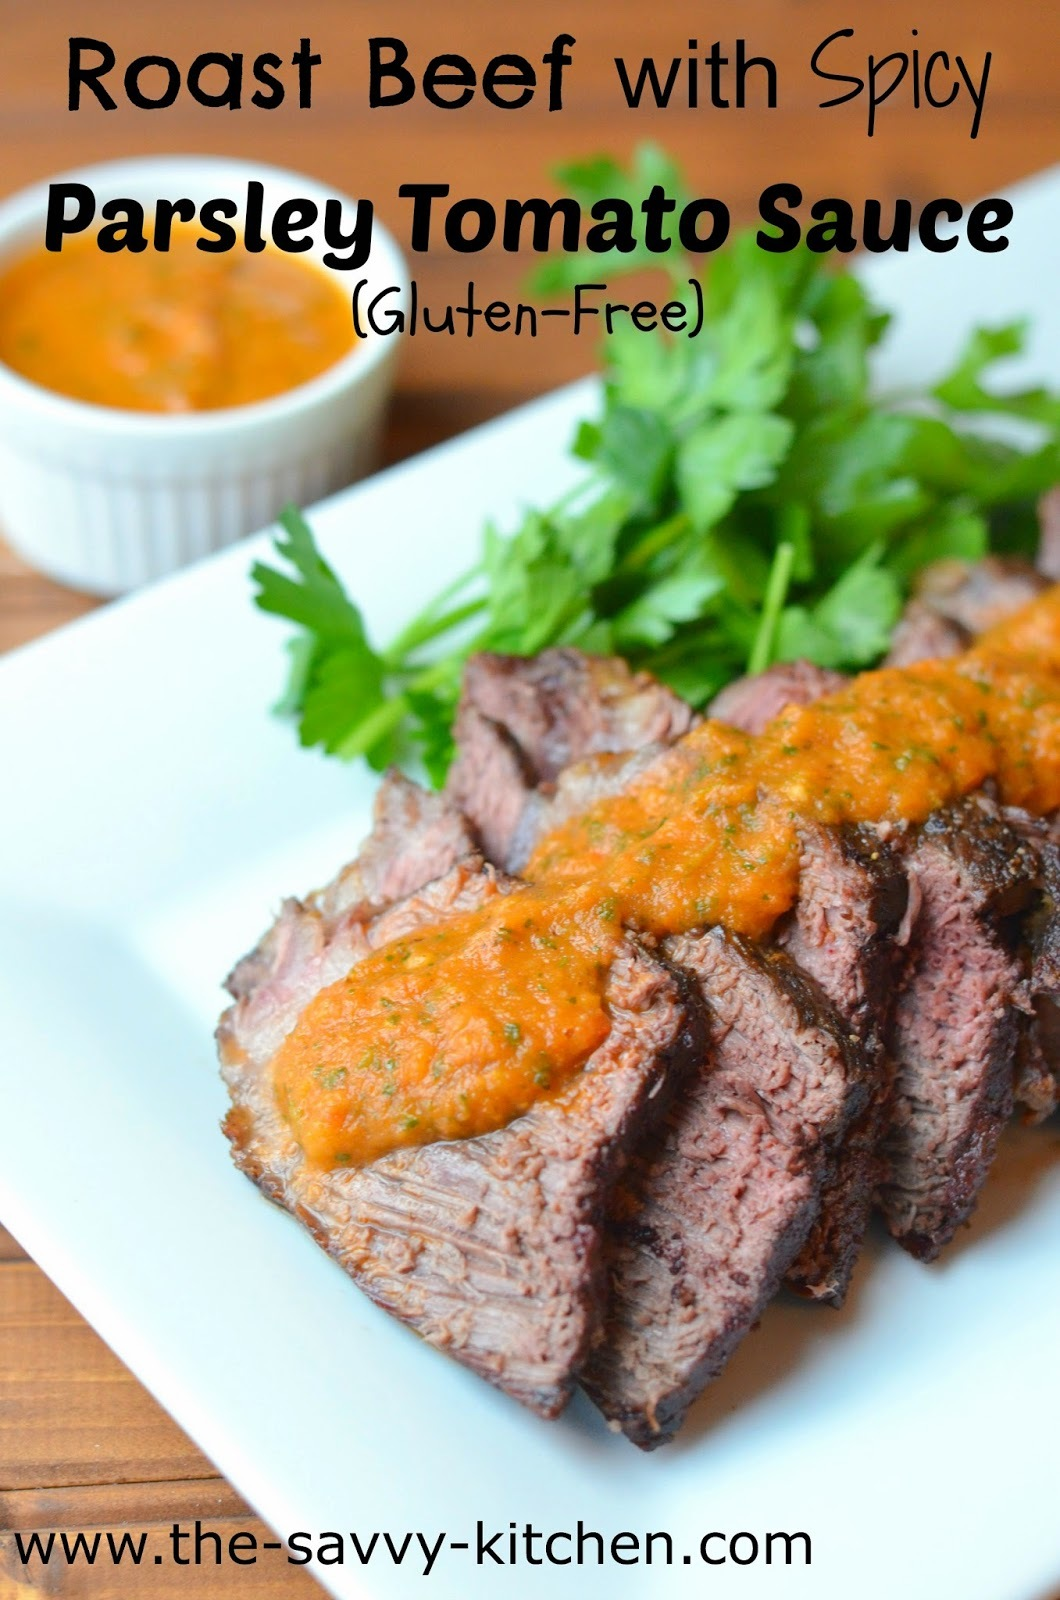 Roast Beef with Spicy Parsley Tomato Sauce (Gluten-Free)